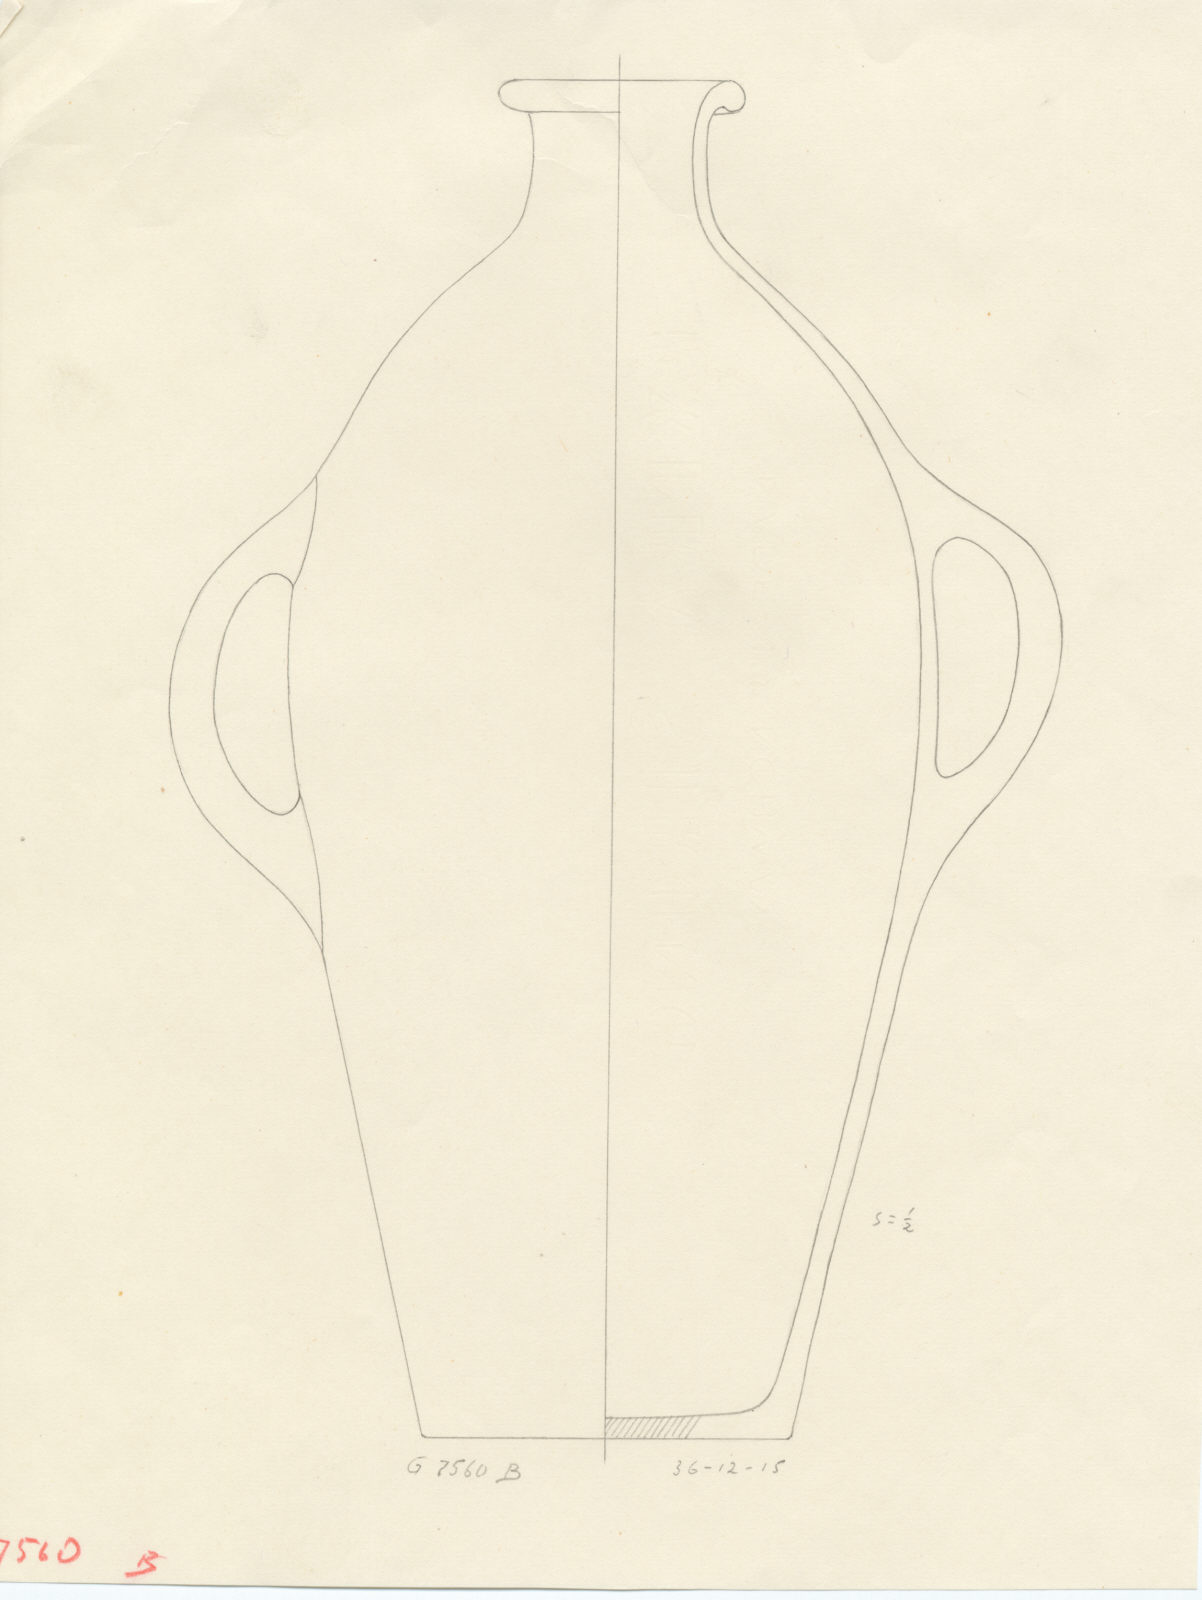 Drawings: G 7560, Shaft B, chamber: pottery, jar with two handles